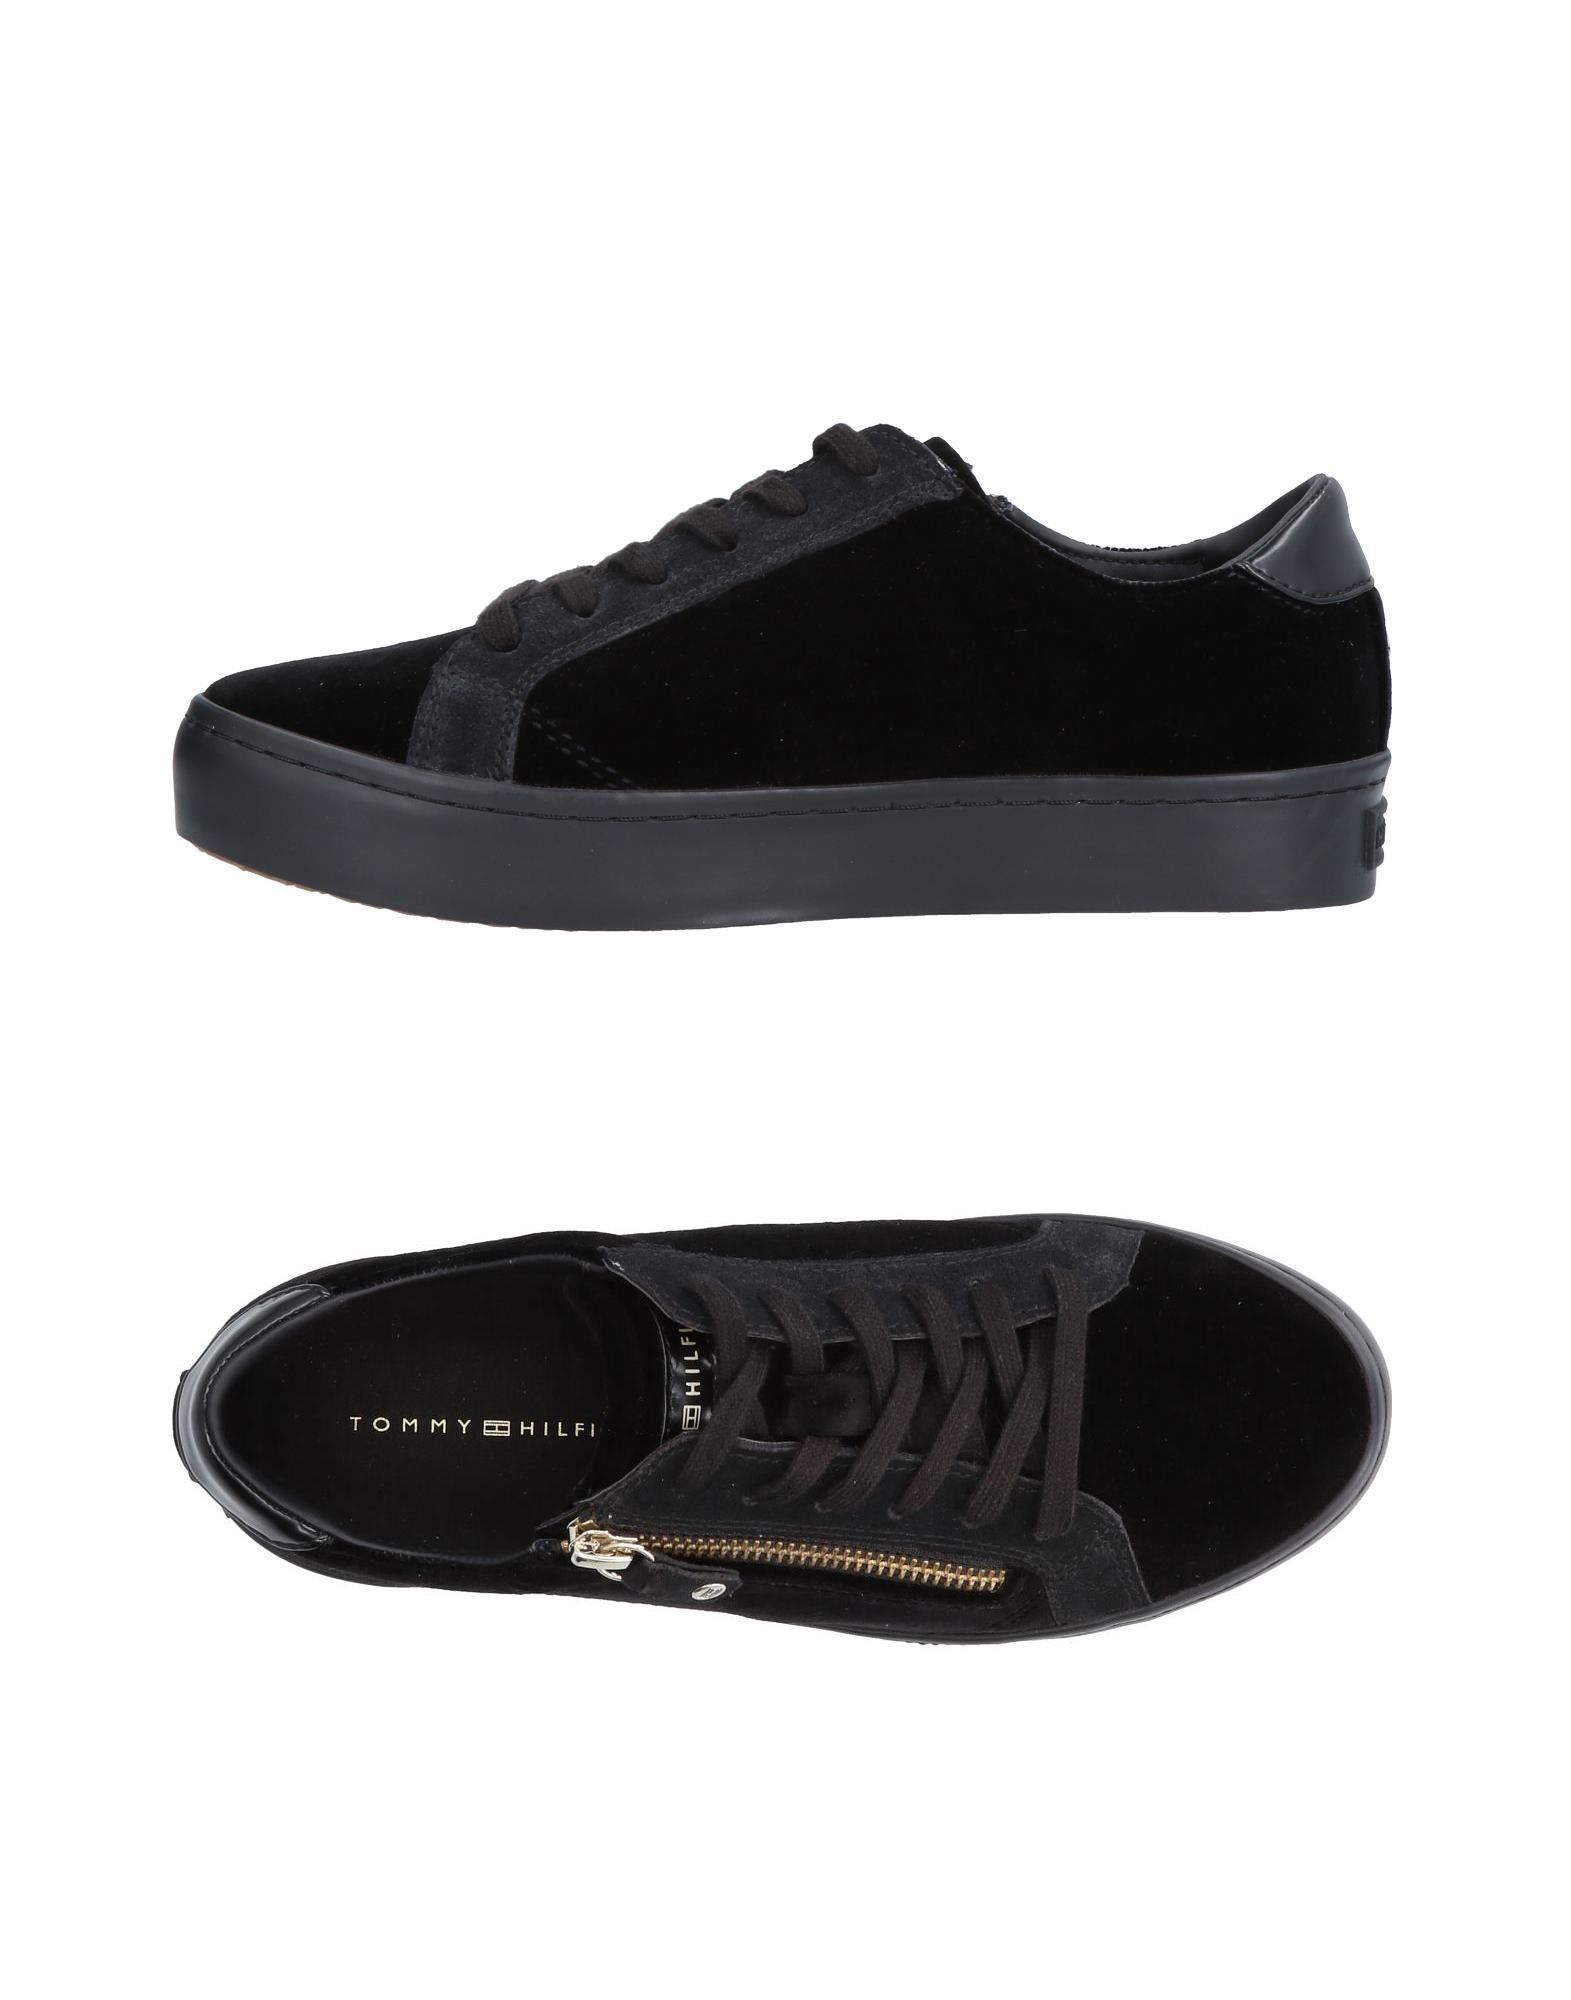 Sneakers Tommy Hilfiger Donna - 11495684LC